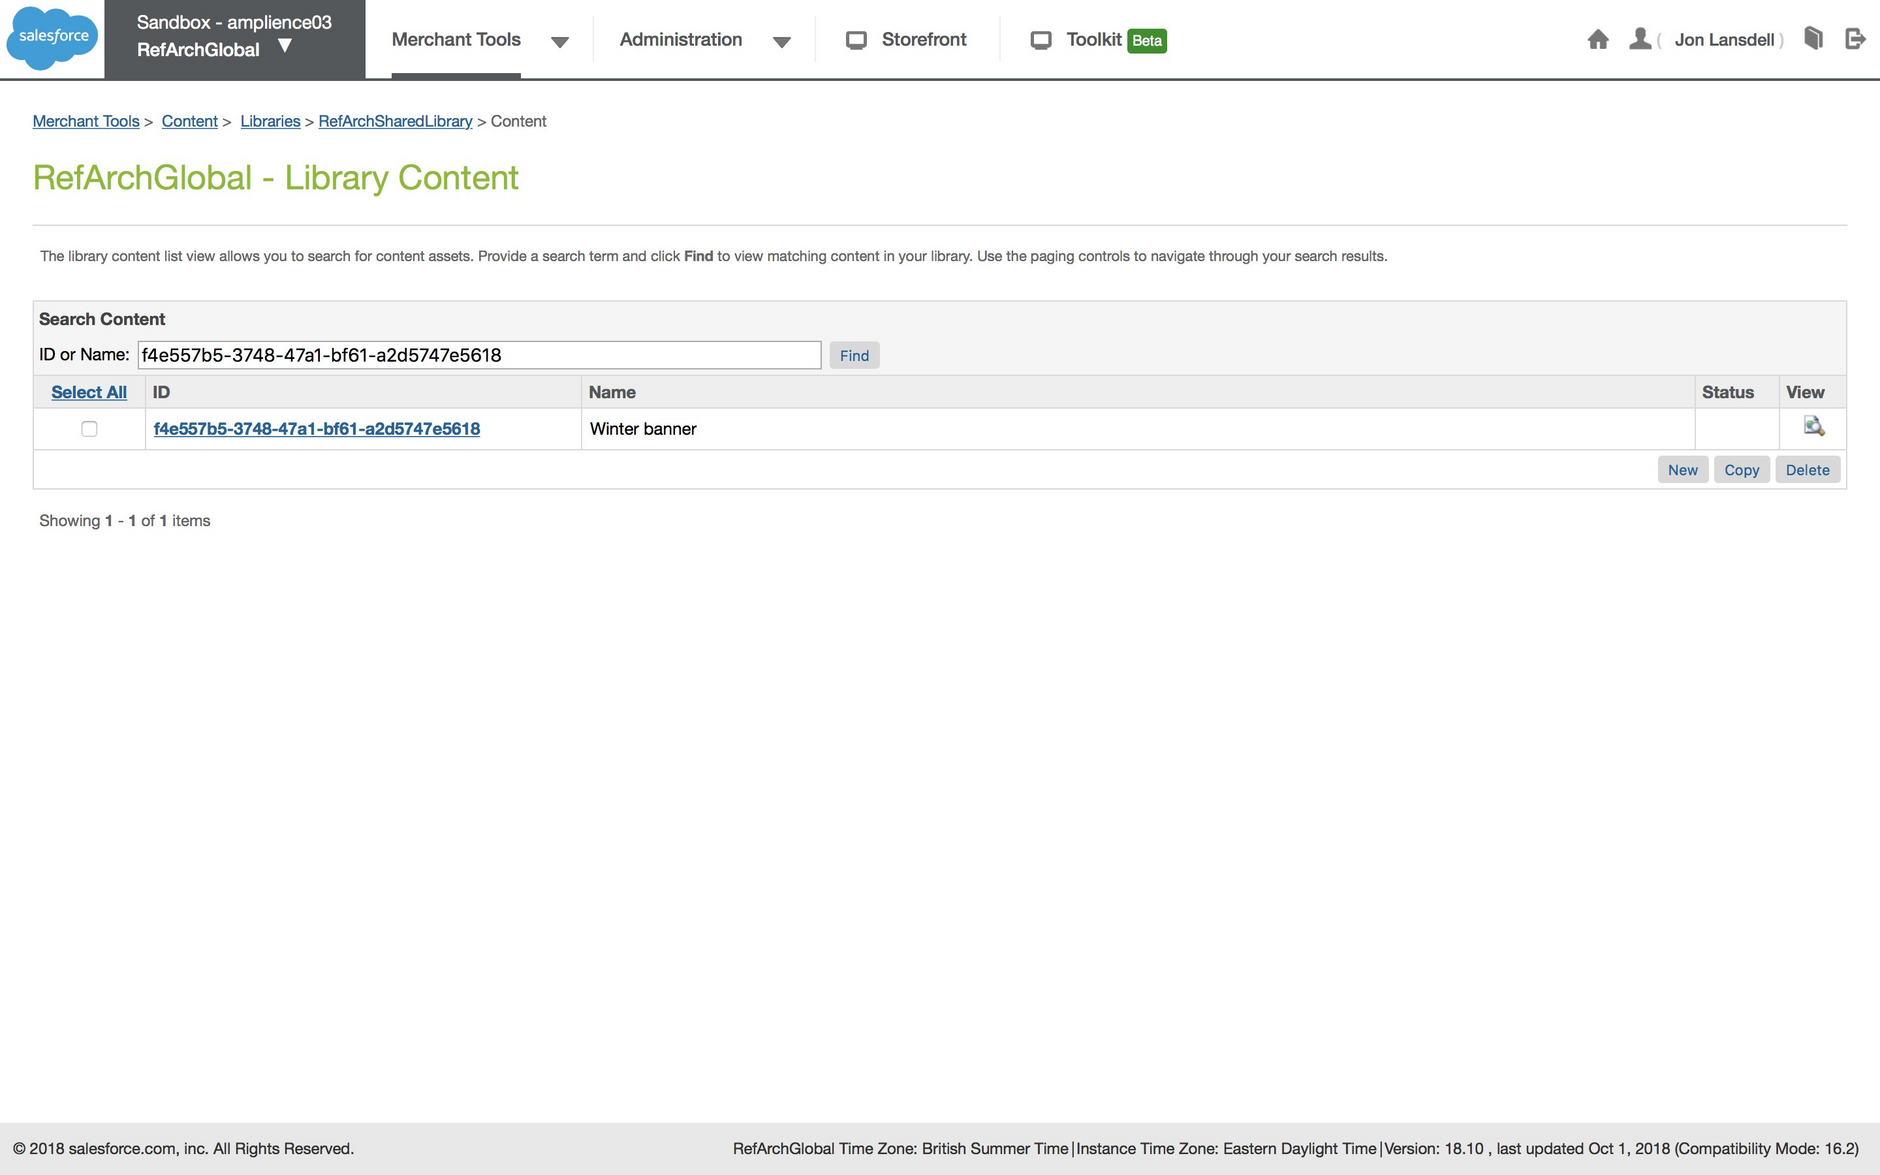 Searching for the content asset using the content ID